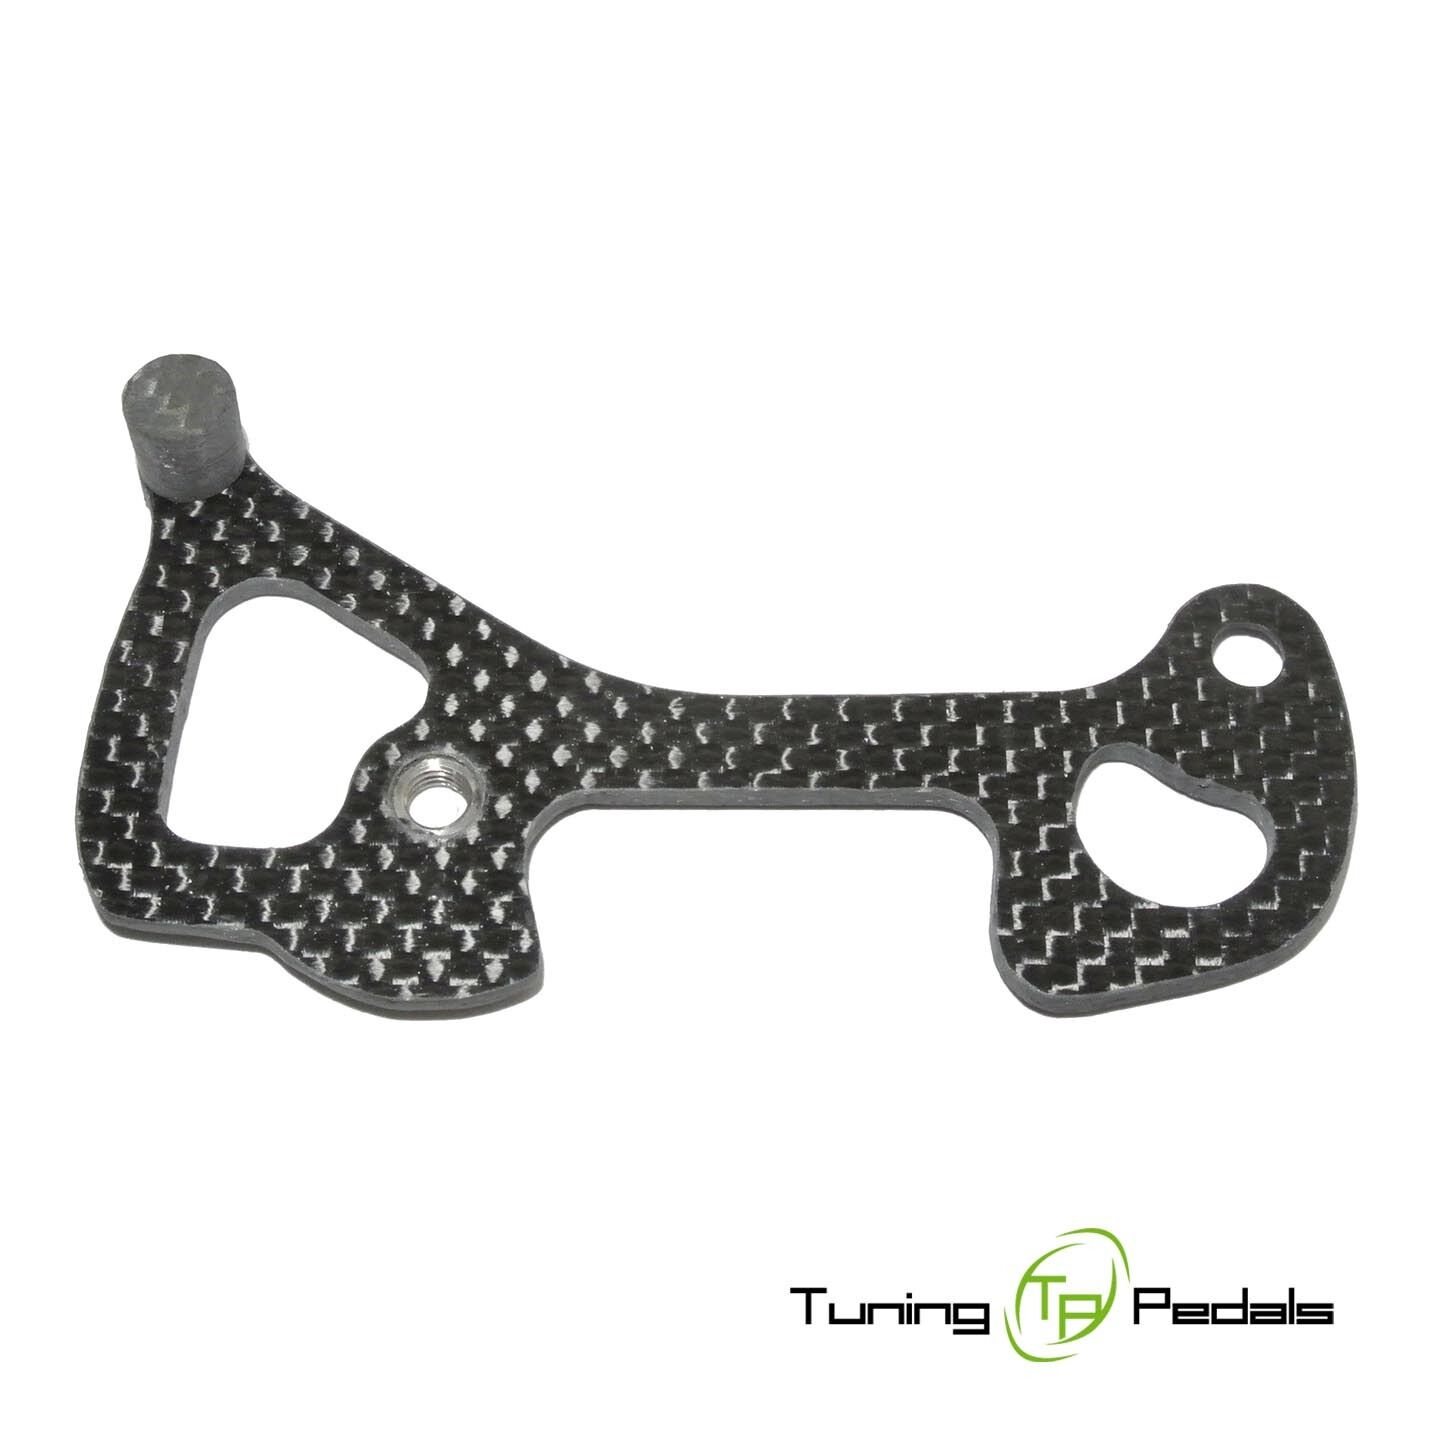 Carbon Rear  Derailleur Cage - Shimano Ultegra 236.3oz 105 201.1oz - 0.2oz  professional integrated online shopping mall